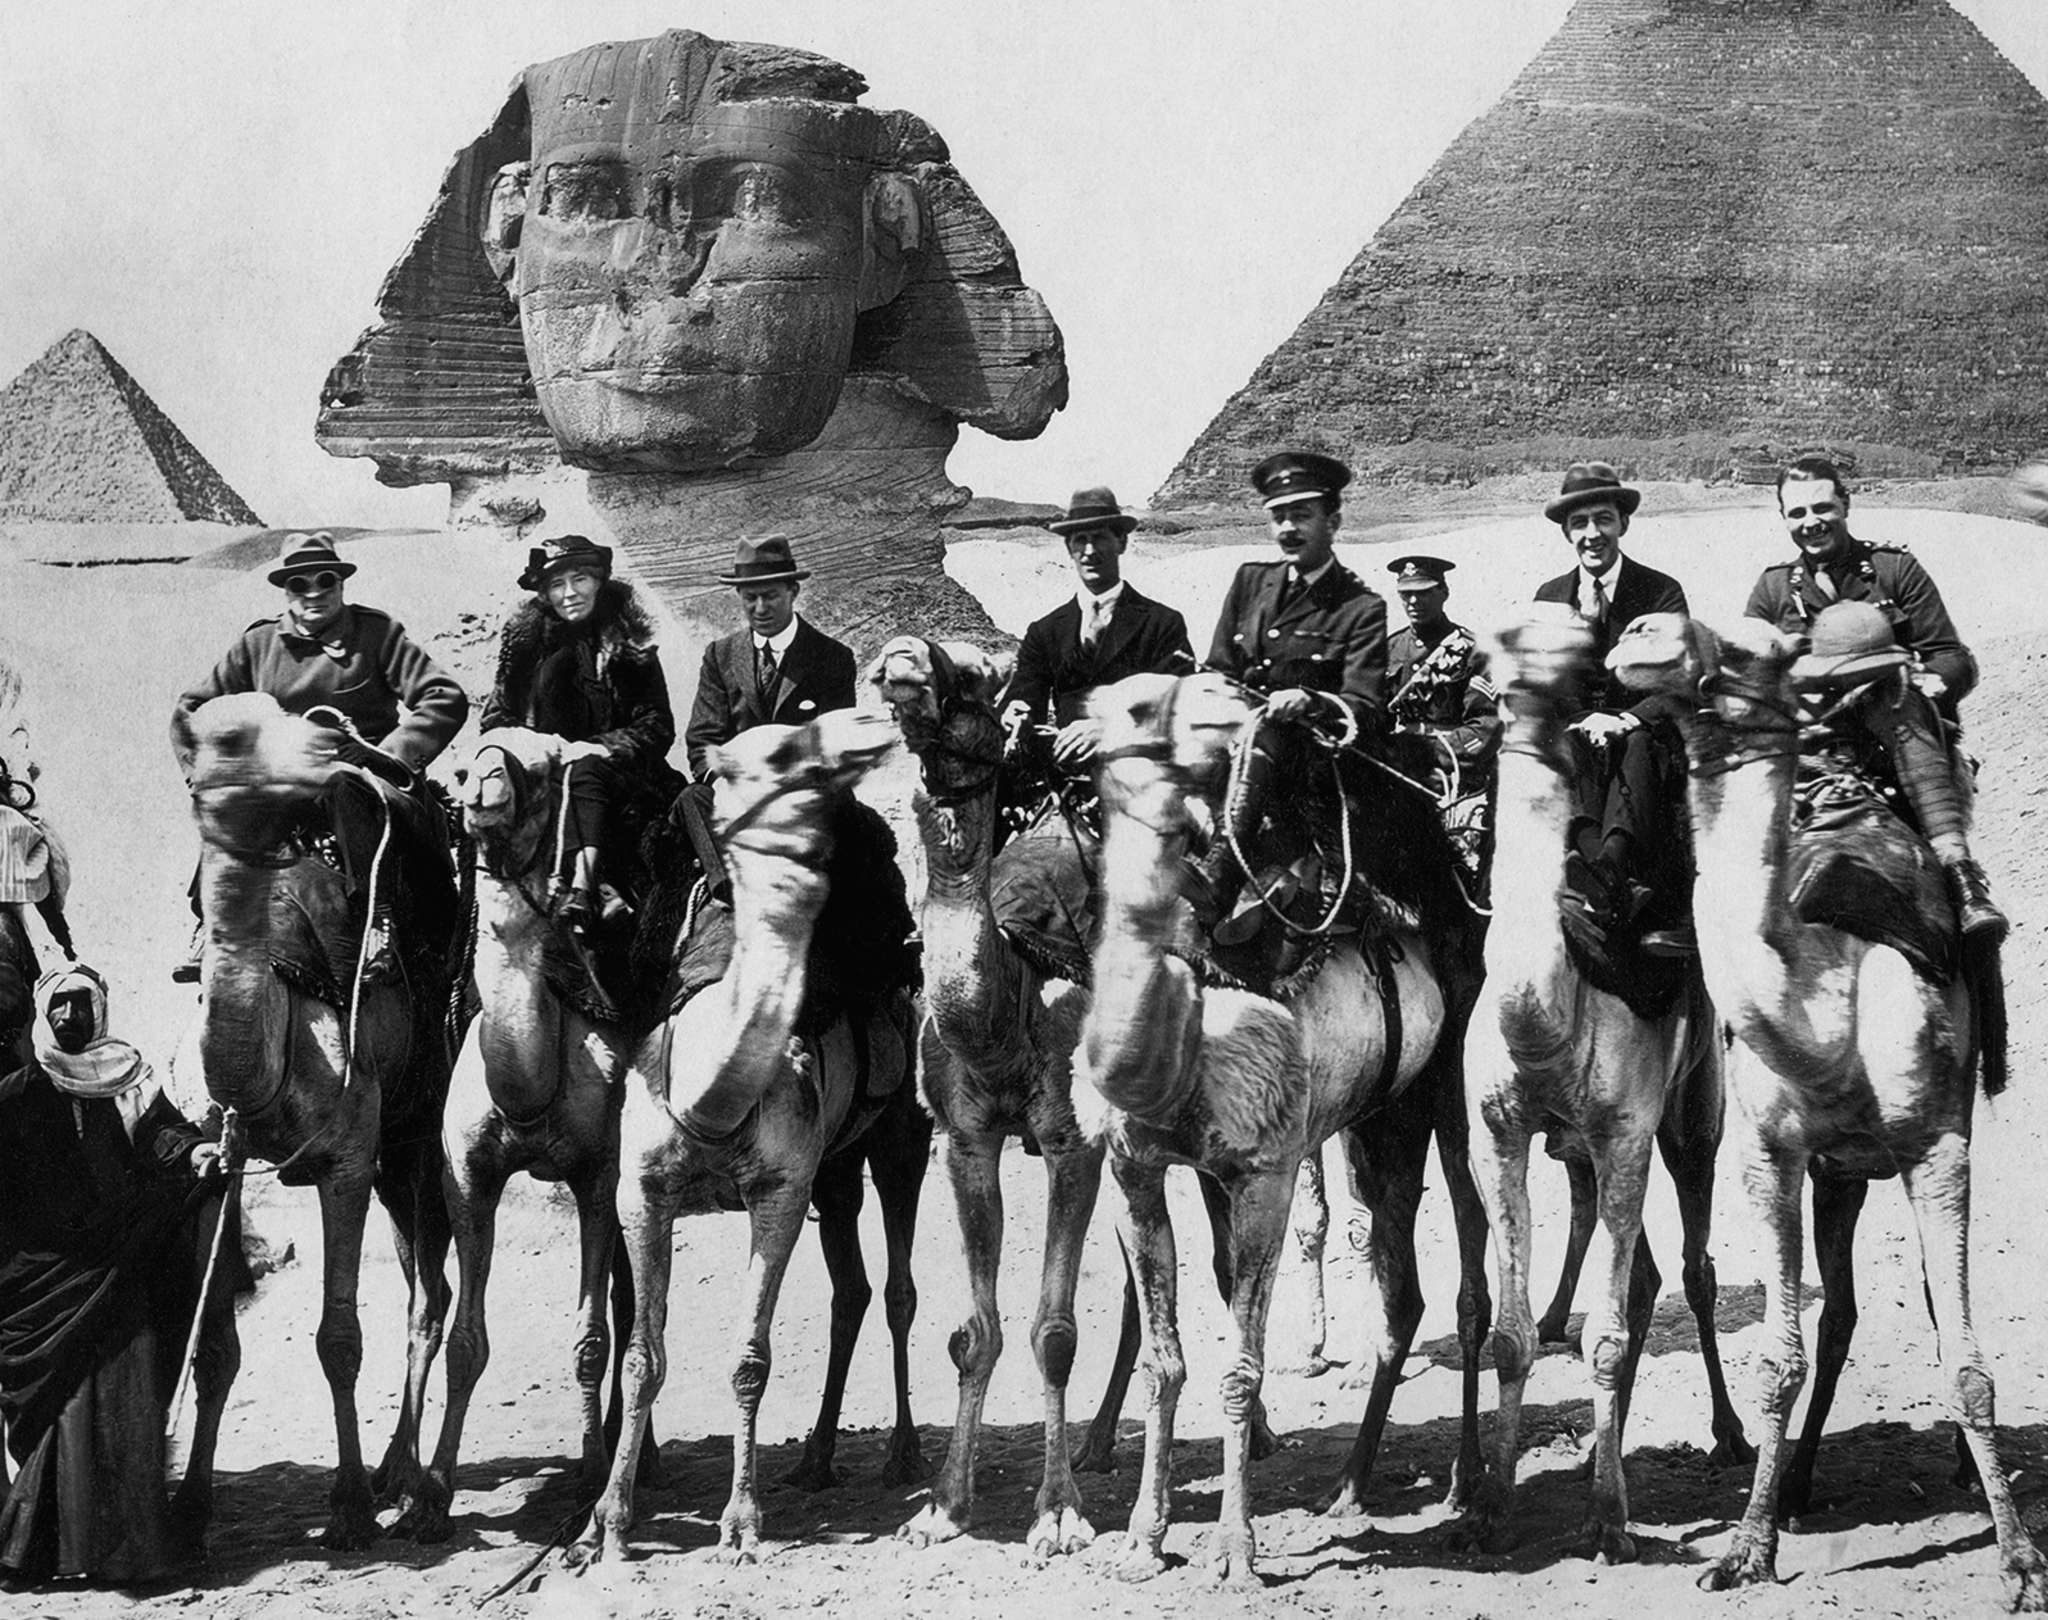 """""""Letters From Baghdad"""": Documentary about Gertrude Bell - second from left, between Winston Churchill and T.E. Lawrence (""""Lawrence of Arabia"""") - who was a British spy and explorer and helped draw the borders of Iraq."""